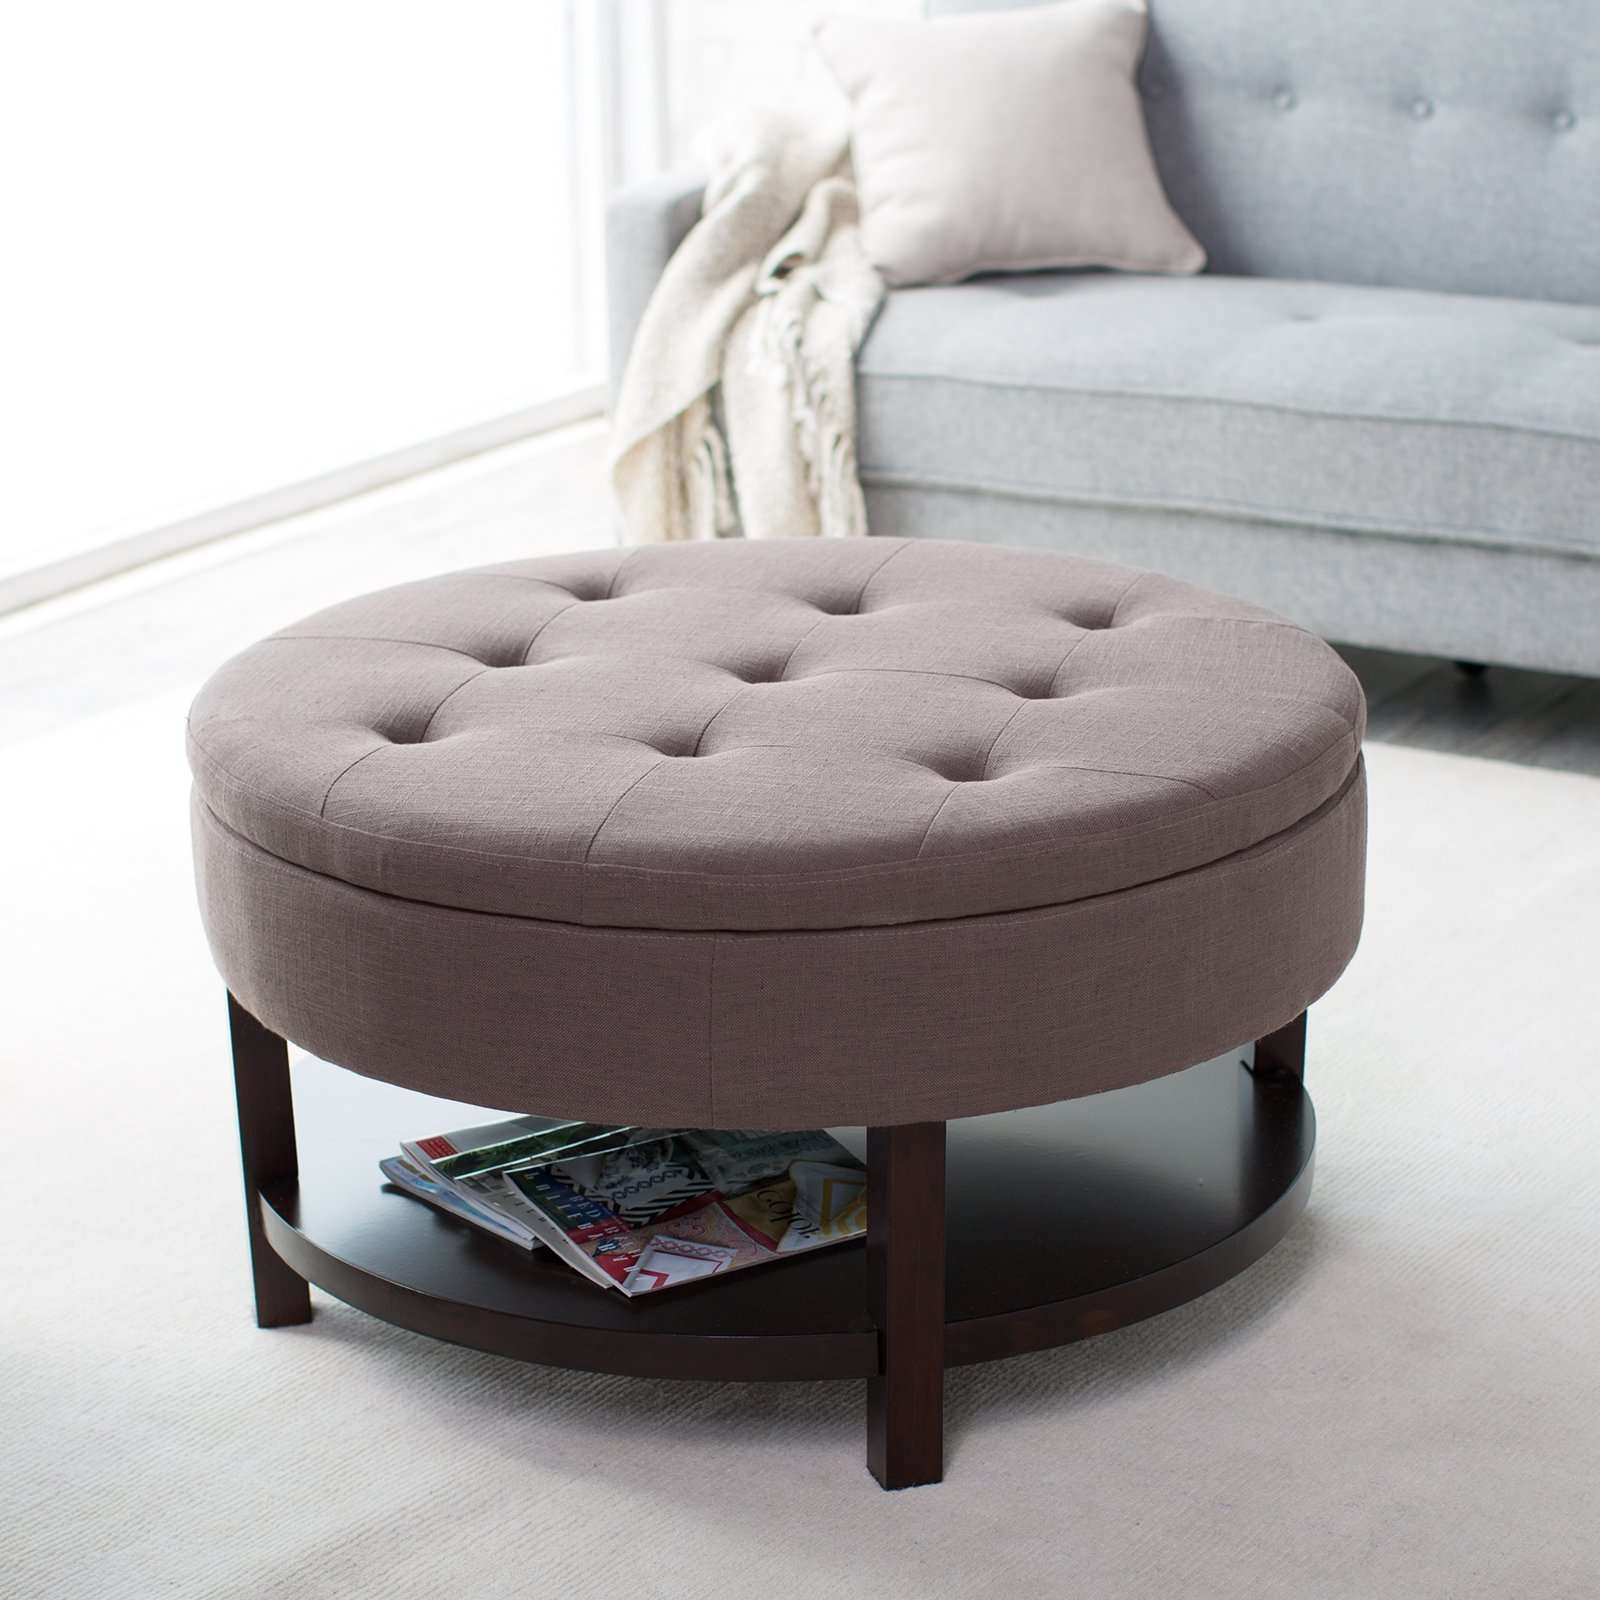 Famous Round Storage Coffee Tables In Coffee Table : Marvelous Brown Leather Ottoman Coffee Table Small (View 5 of 20)